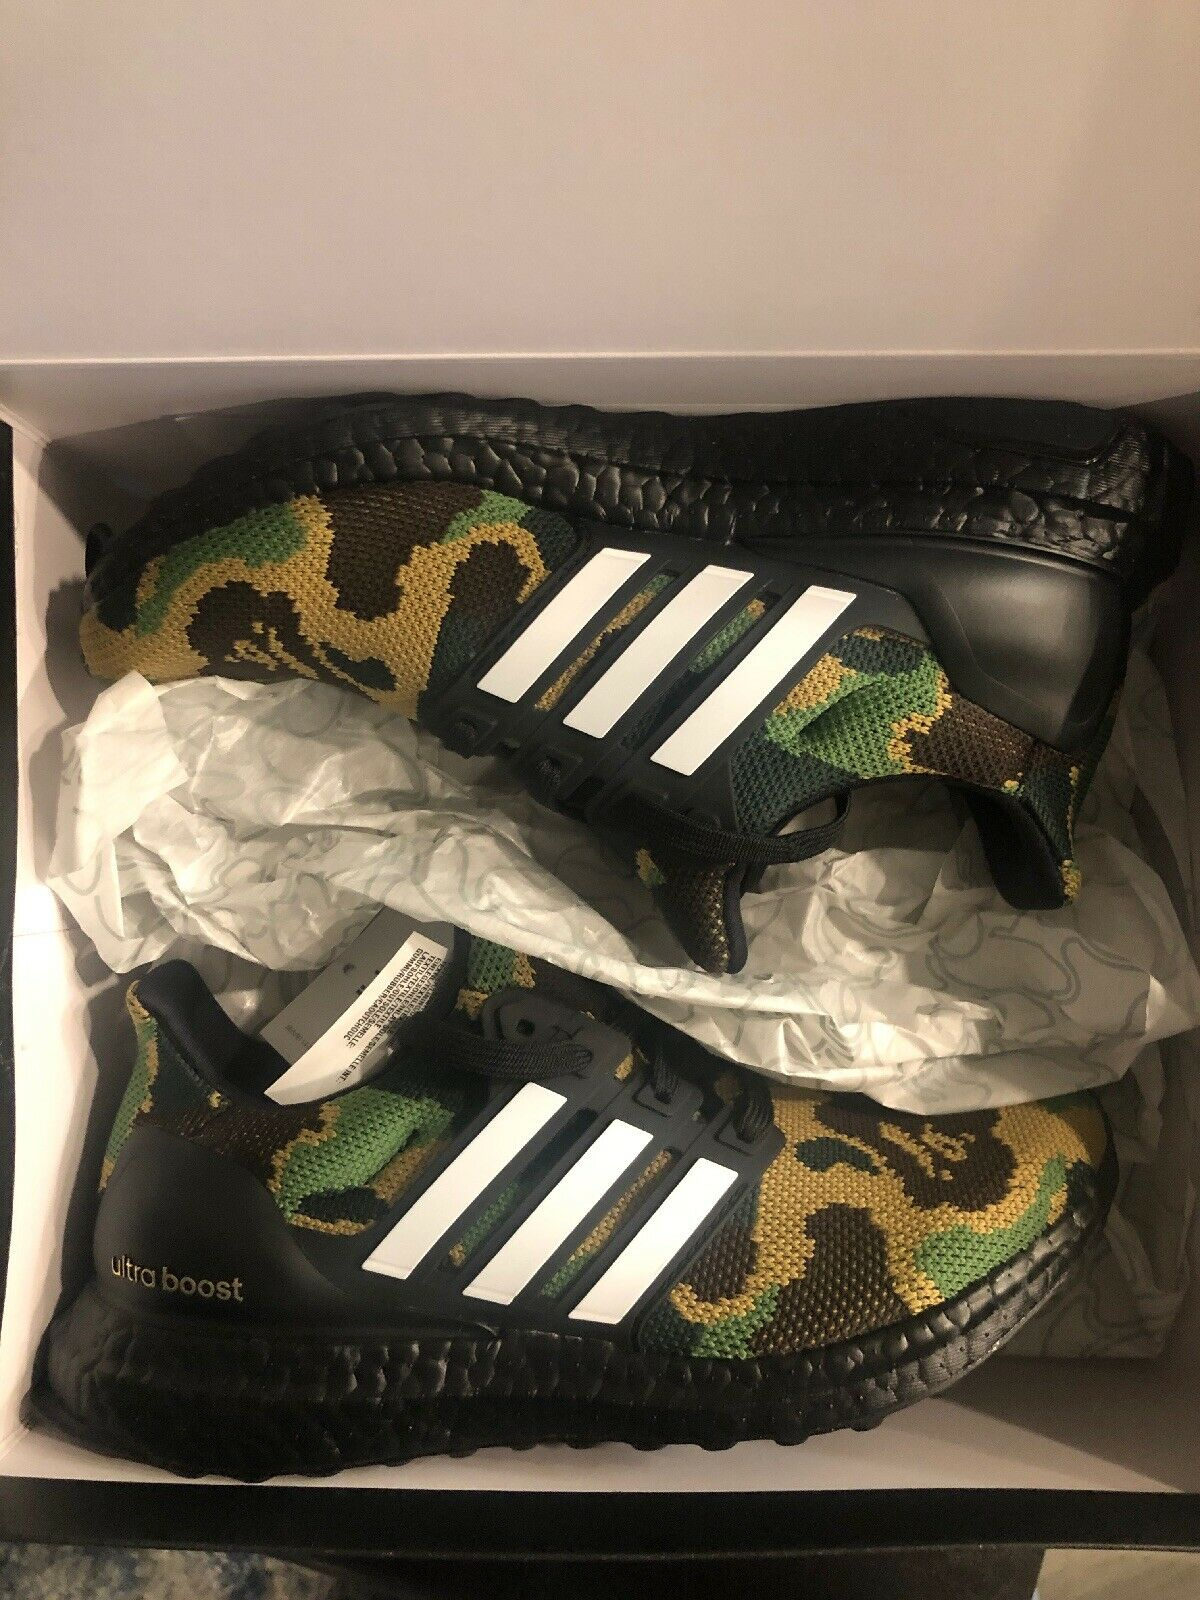 Bape x Adidas Ultra Boost 4.0 Green Camo Super Bowl F35097 size 4.5 In Hand